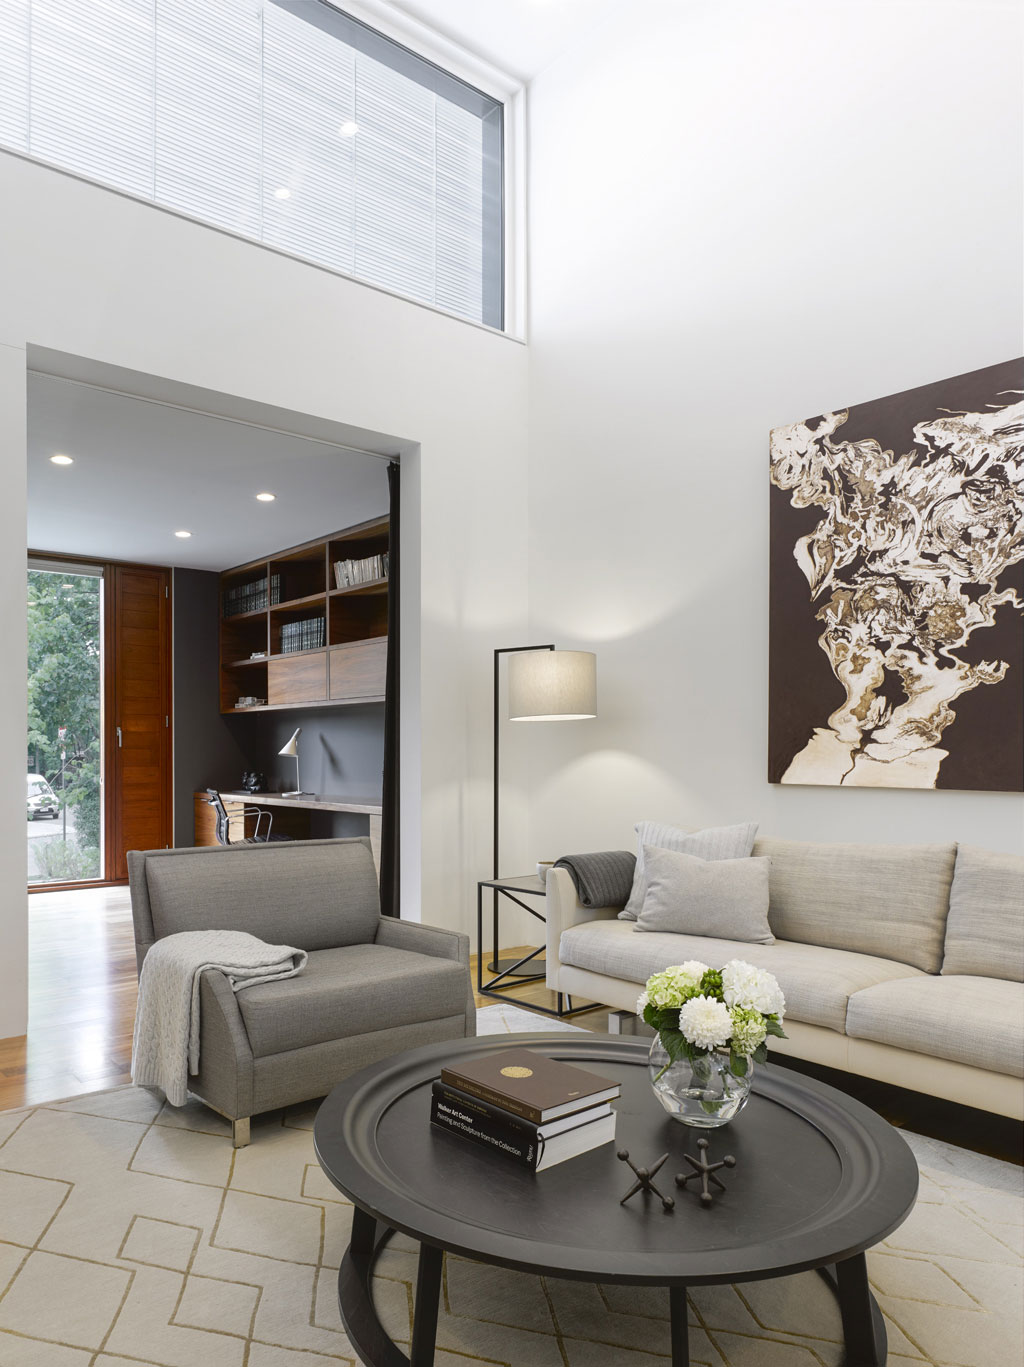 Counterpoint House by Paul Raff Studio Architects (3)